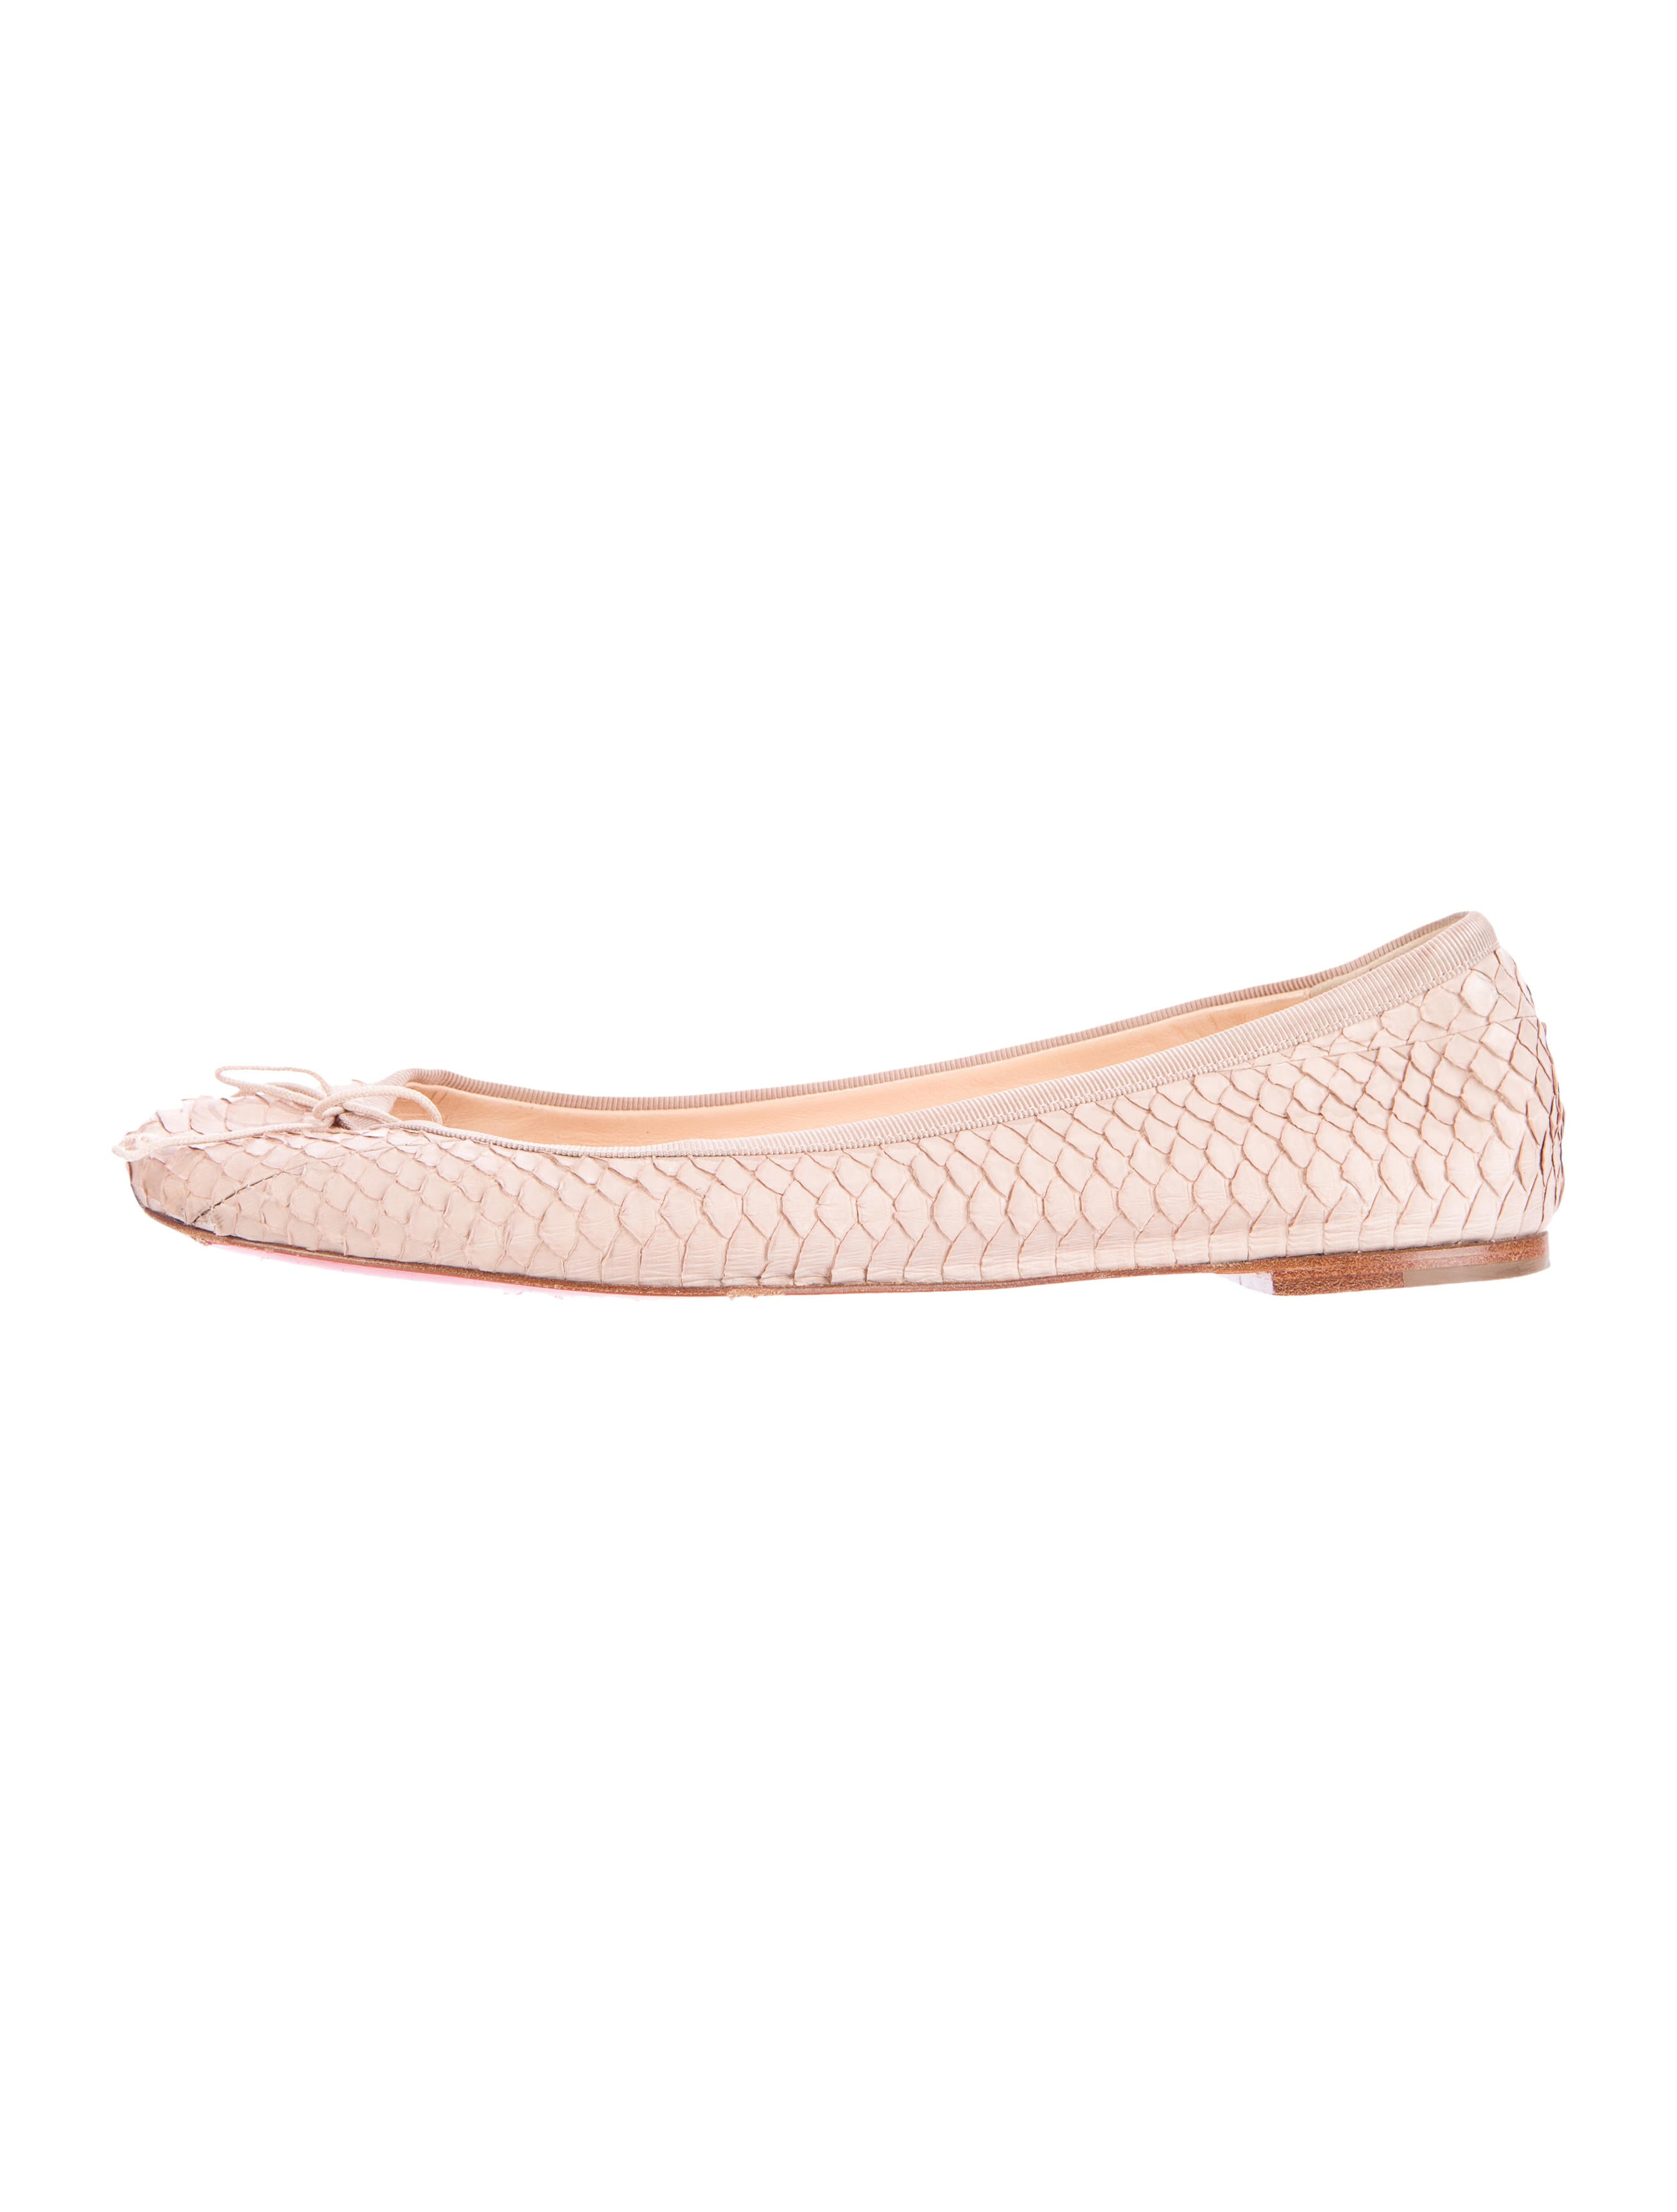 58696074d29 Christian Louboutin Python Ballet Flats - Shoes - CHT54604 | The ...